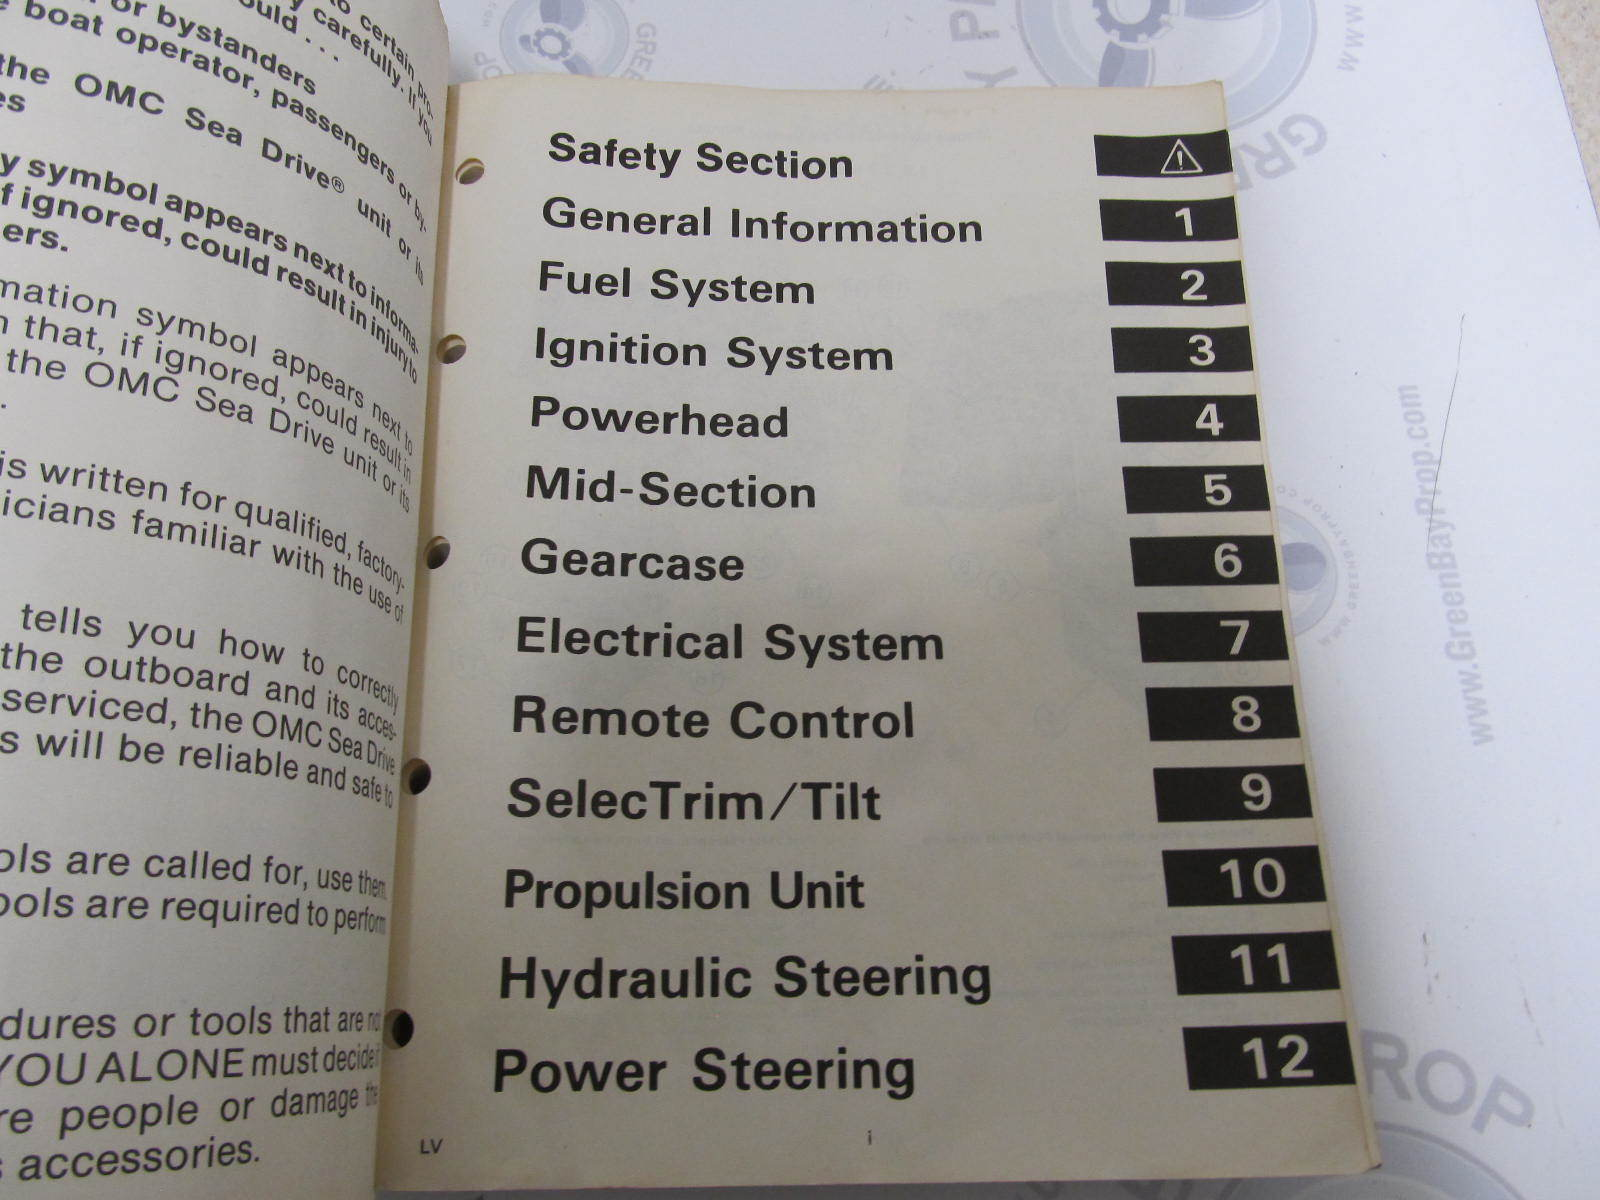 Omc Sea Drive Wiring Diagram Trusted Diagrams V4 Engine Key Switch